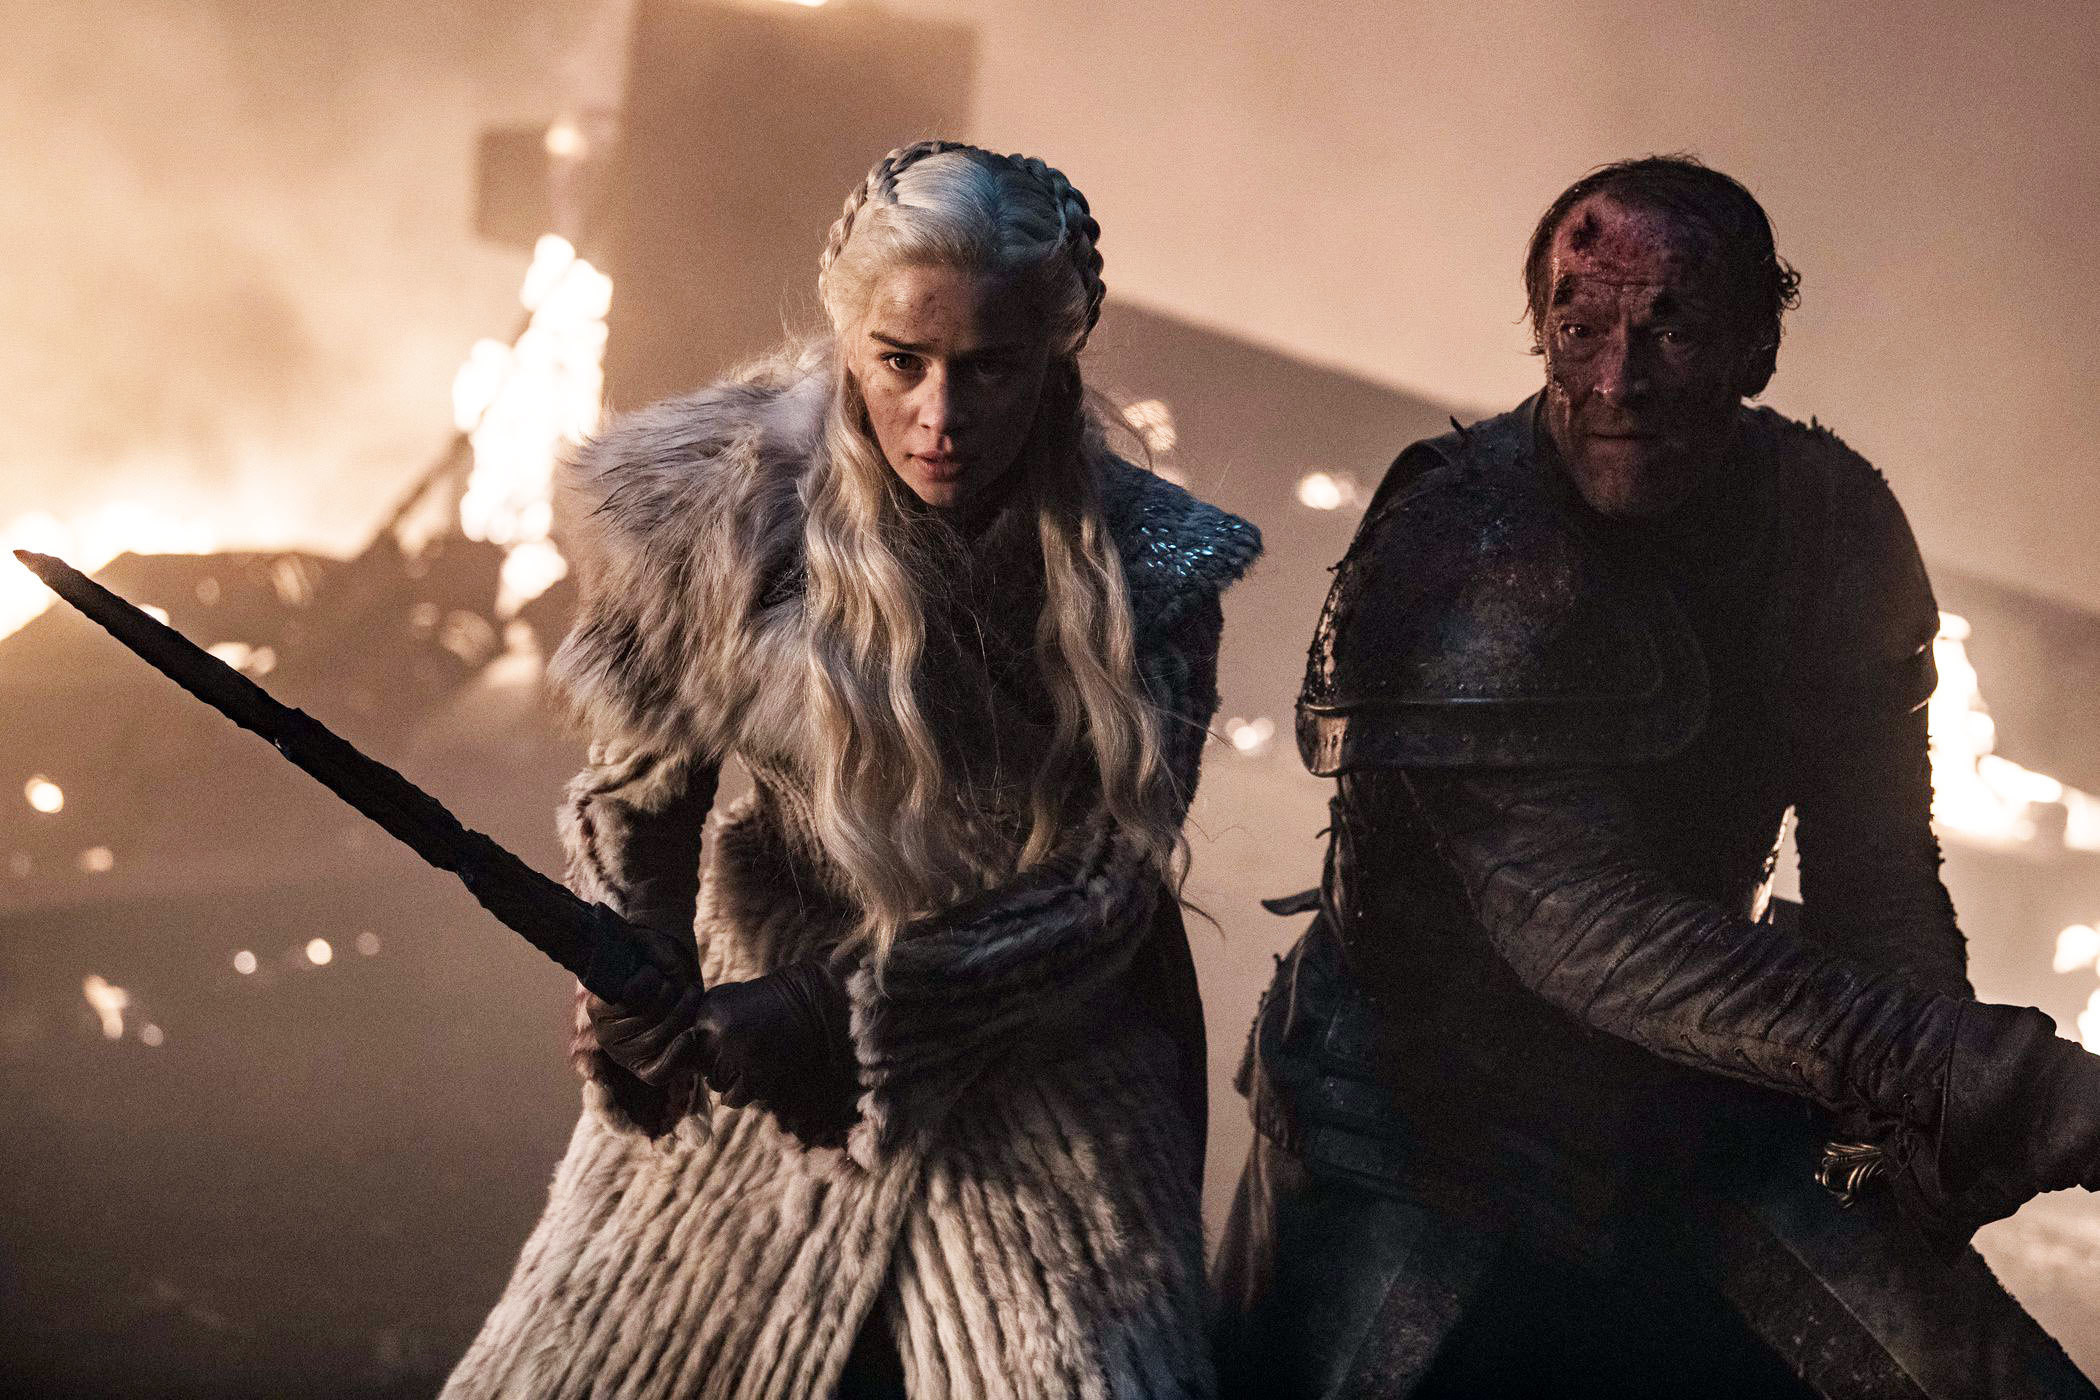 'Game Of Thrones' Season 8, Episode 3 Trivia